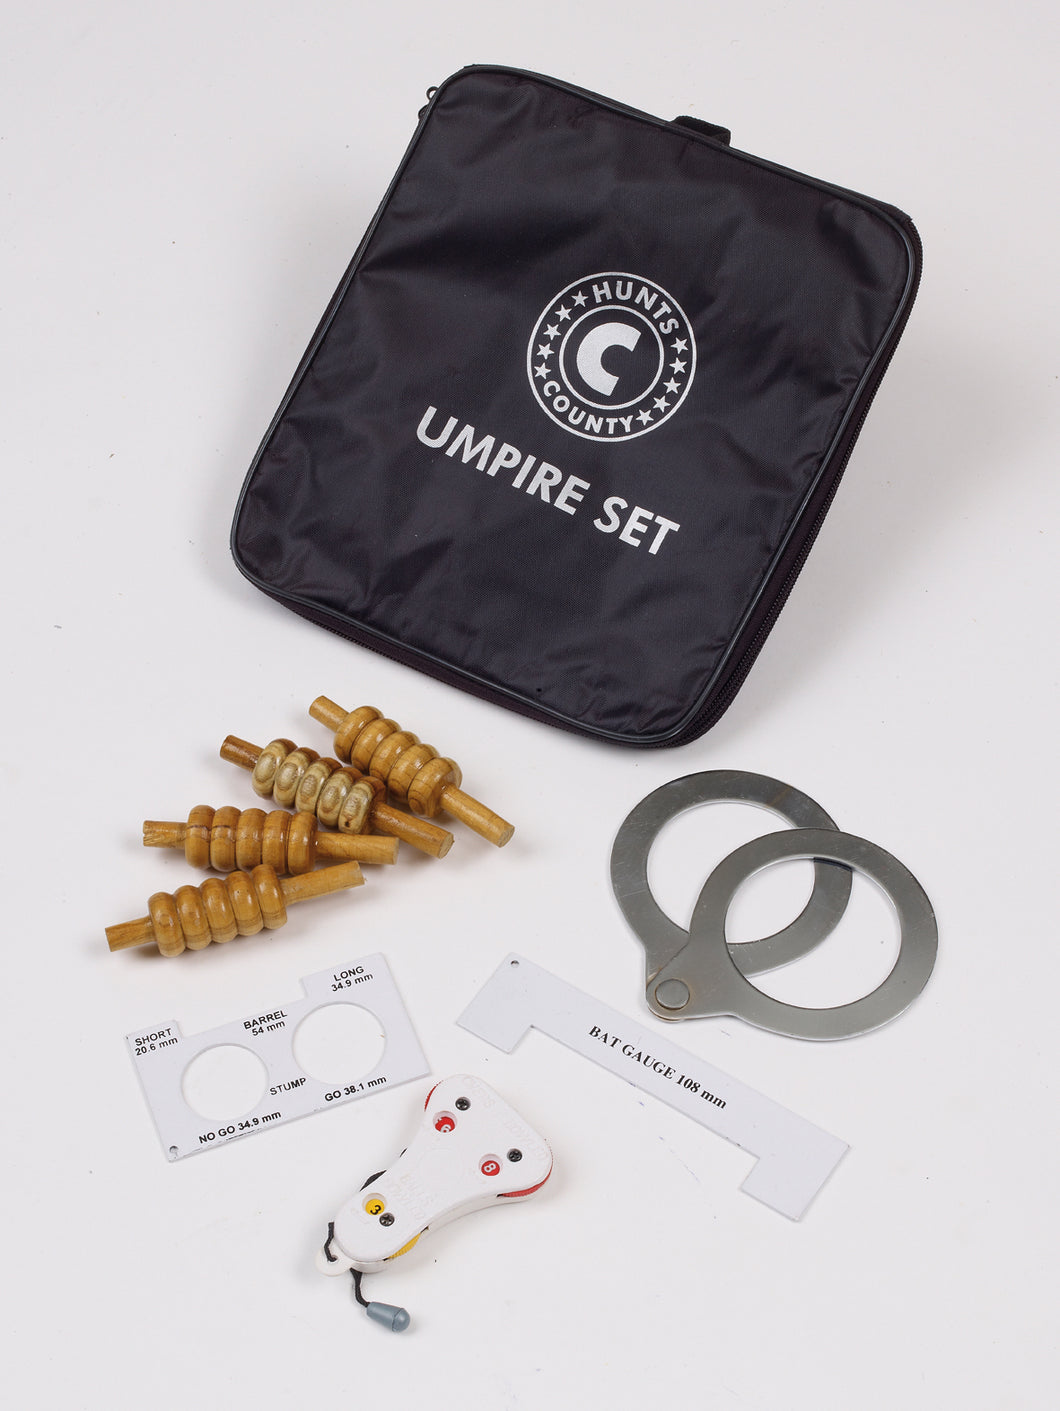 Umpire Set - The Incredible Cricket Company